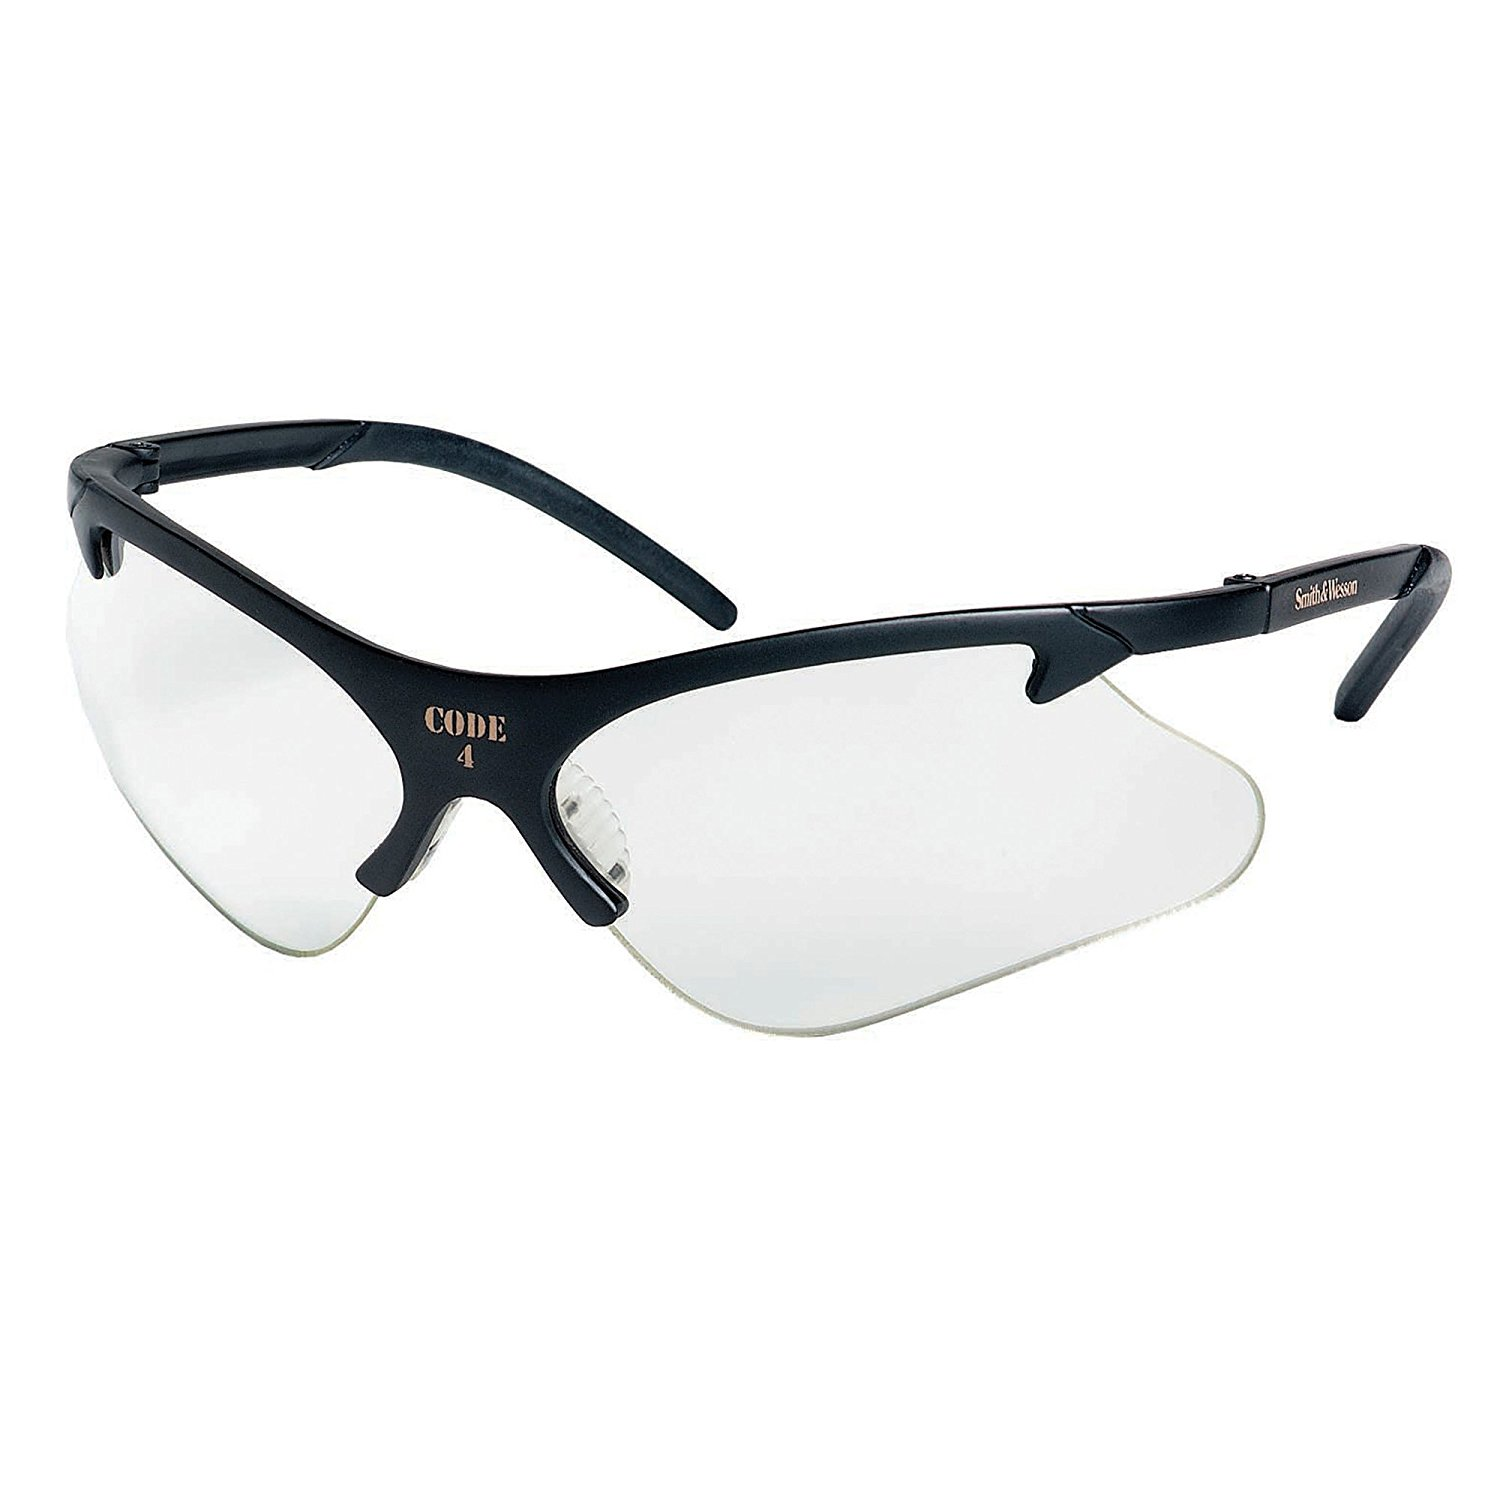 Smith & Wesson 19833 Code 4 Safety Glasses, Clear Lenses with Black Frame, Pack of 12